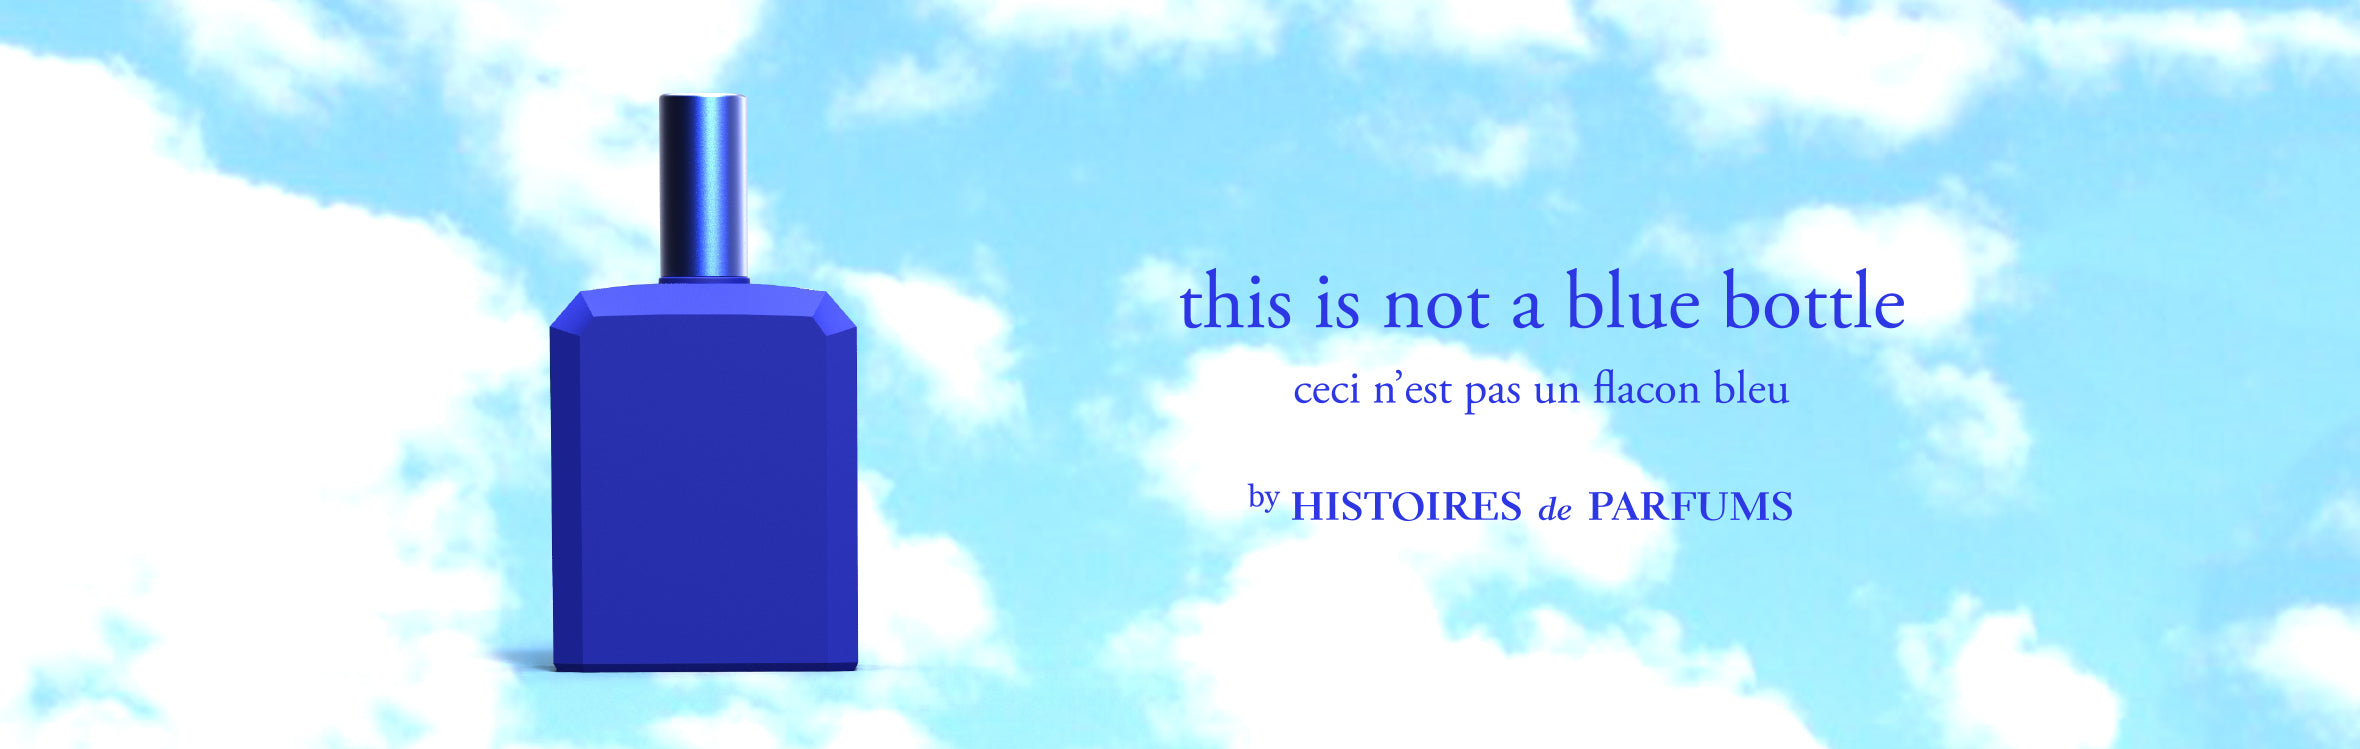 Histoires de Parfums - This is not a blue bottle